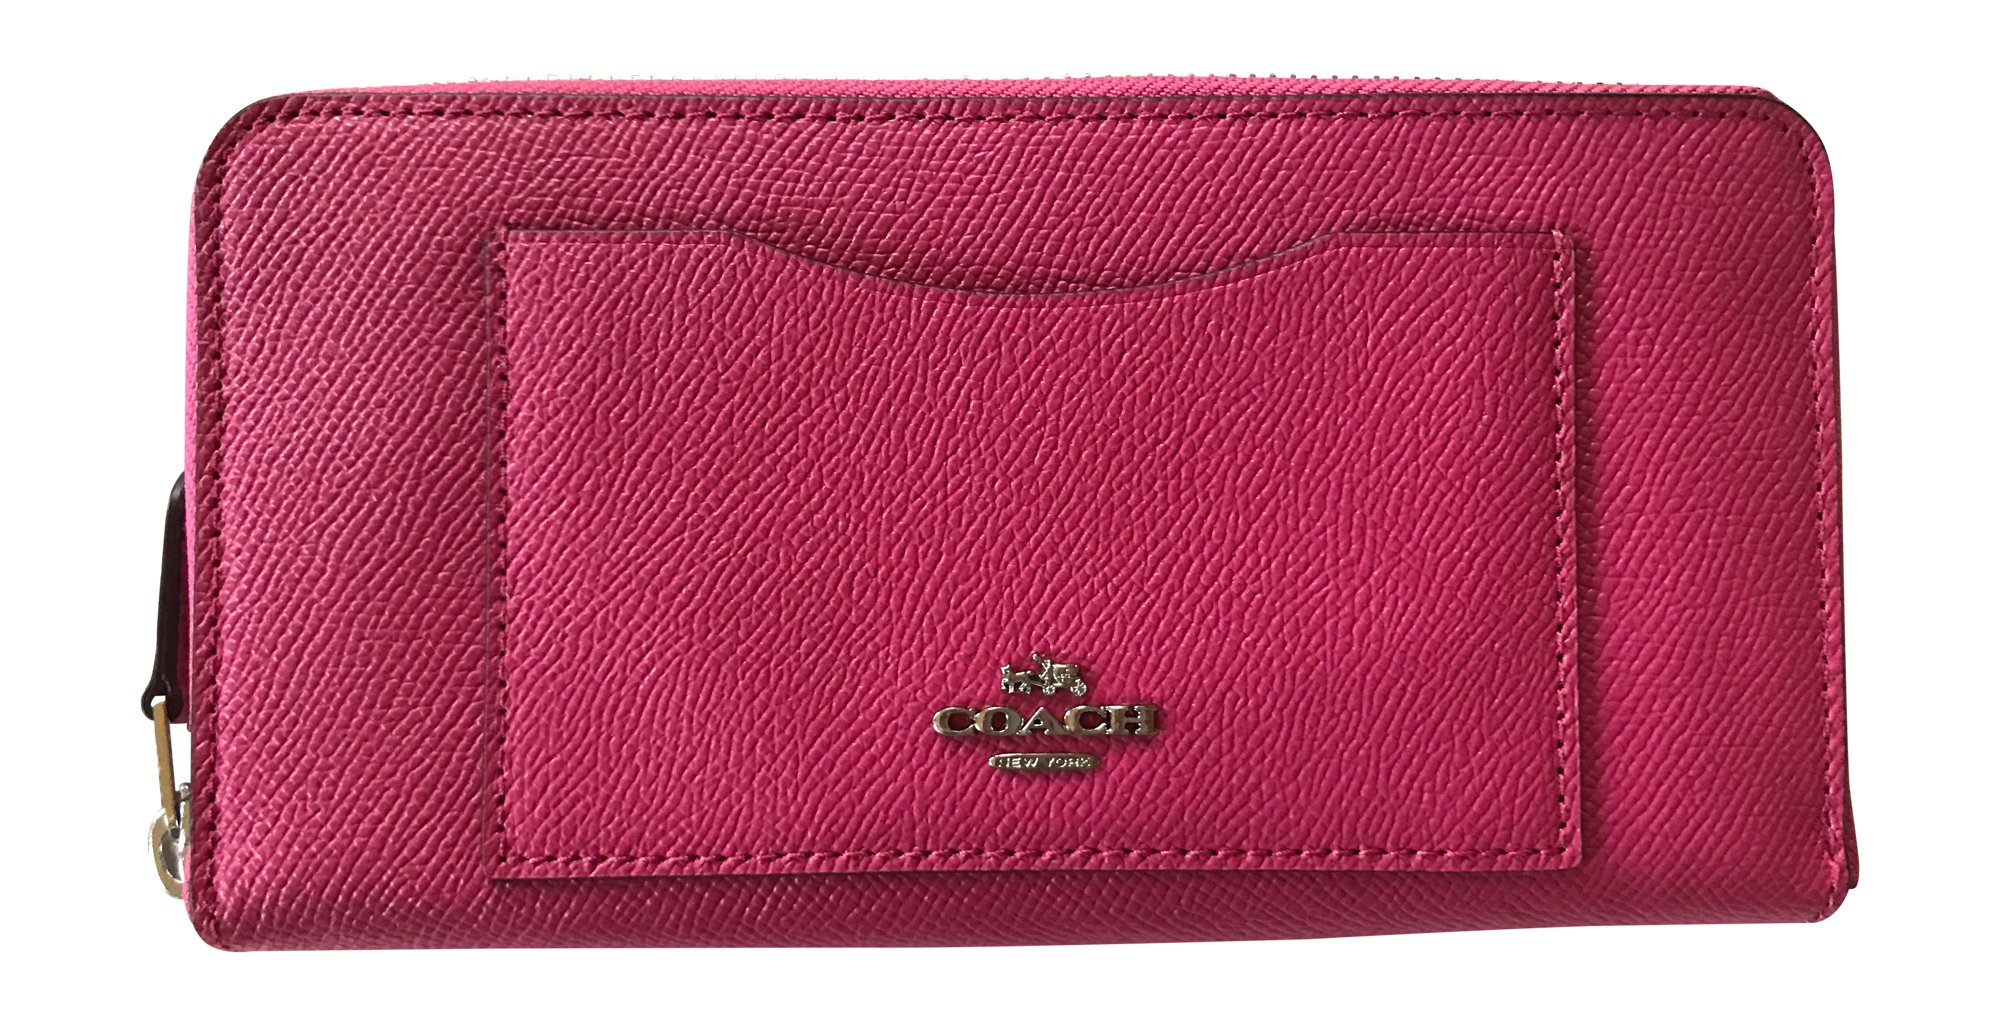 Coach Crossgrain Leather Accordian Zip Wallet, Magenta